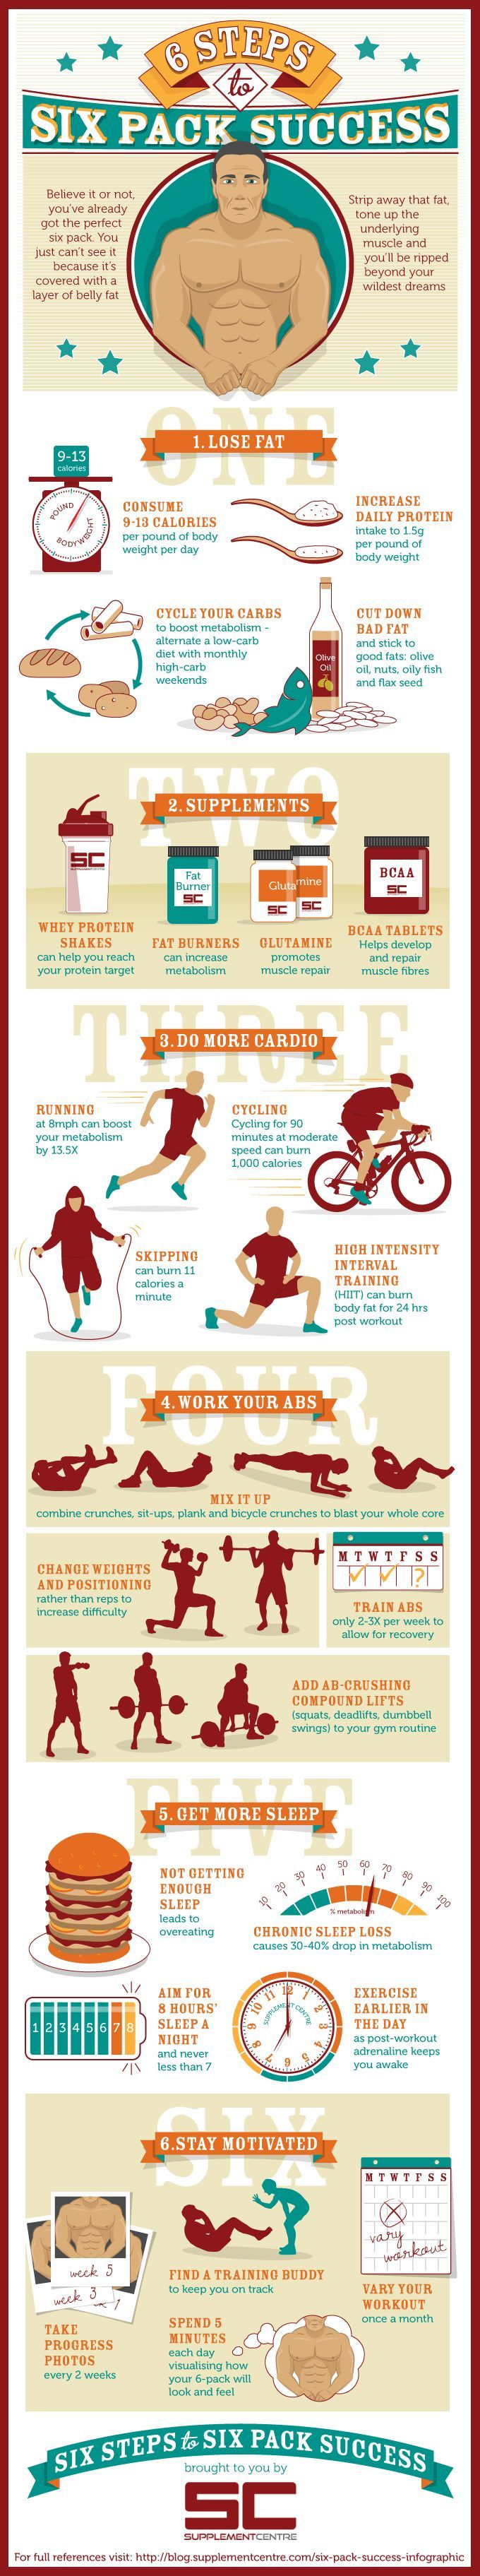 6 Steps To Six Pack Success